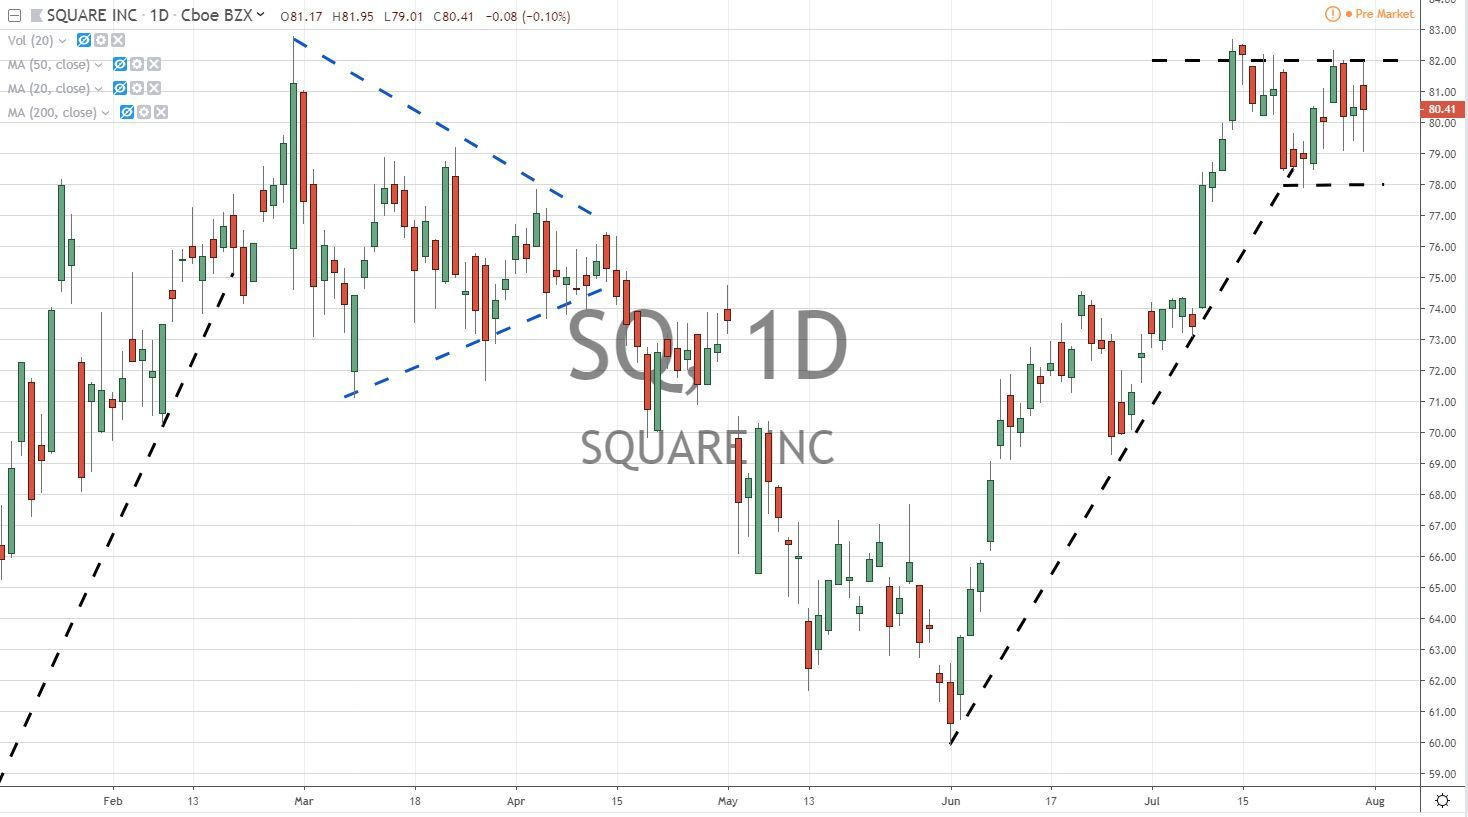 Square Inc SQ Stock Chart 8.1.19 Before Earnings